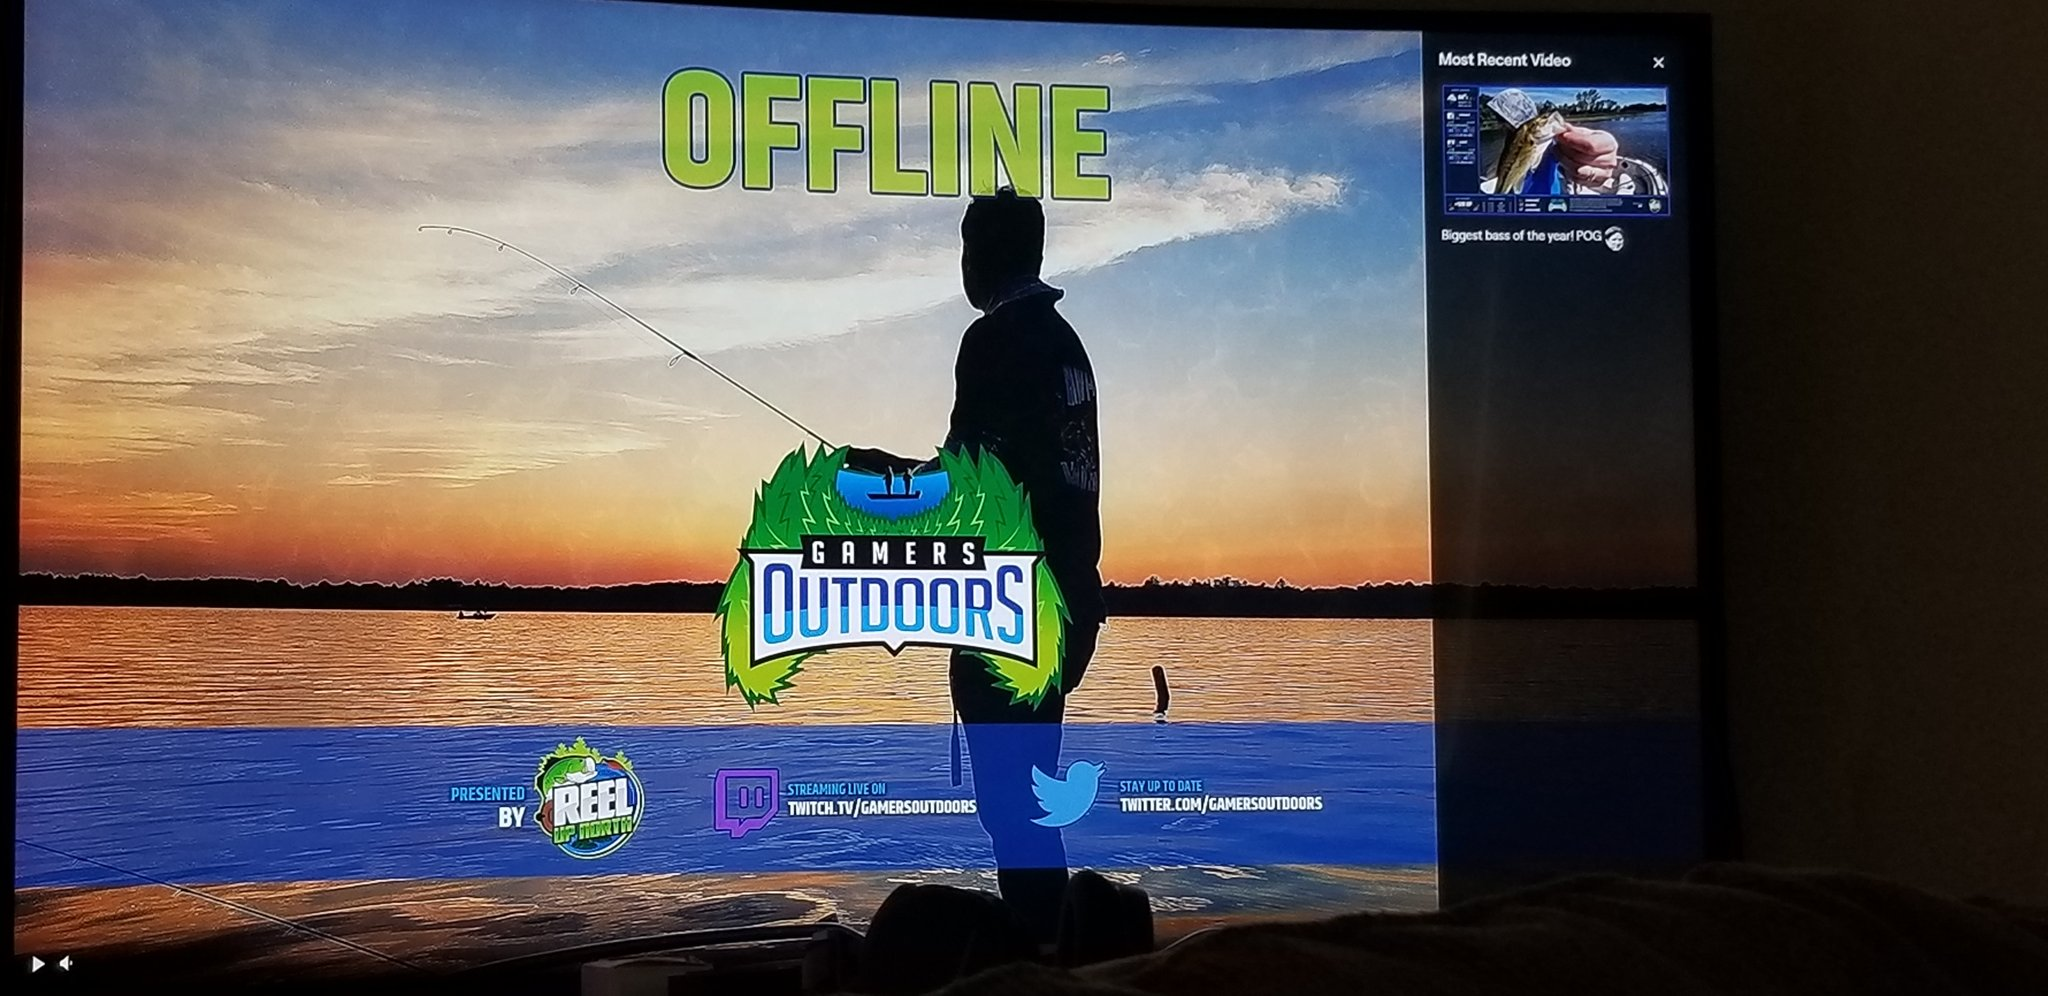 gamersoutdoors-r3dneckinvasion-kjamesn-when-are-yall-going-live-im-waiting-%f0%9f%98%81-https-t-co-ghmndizp1x